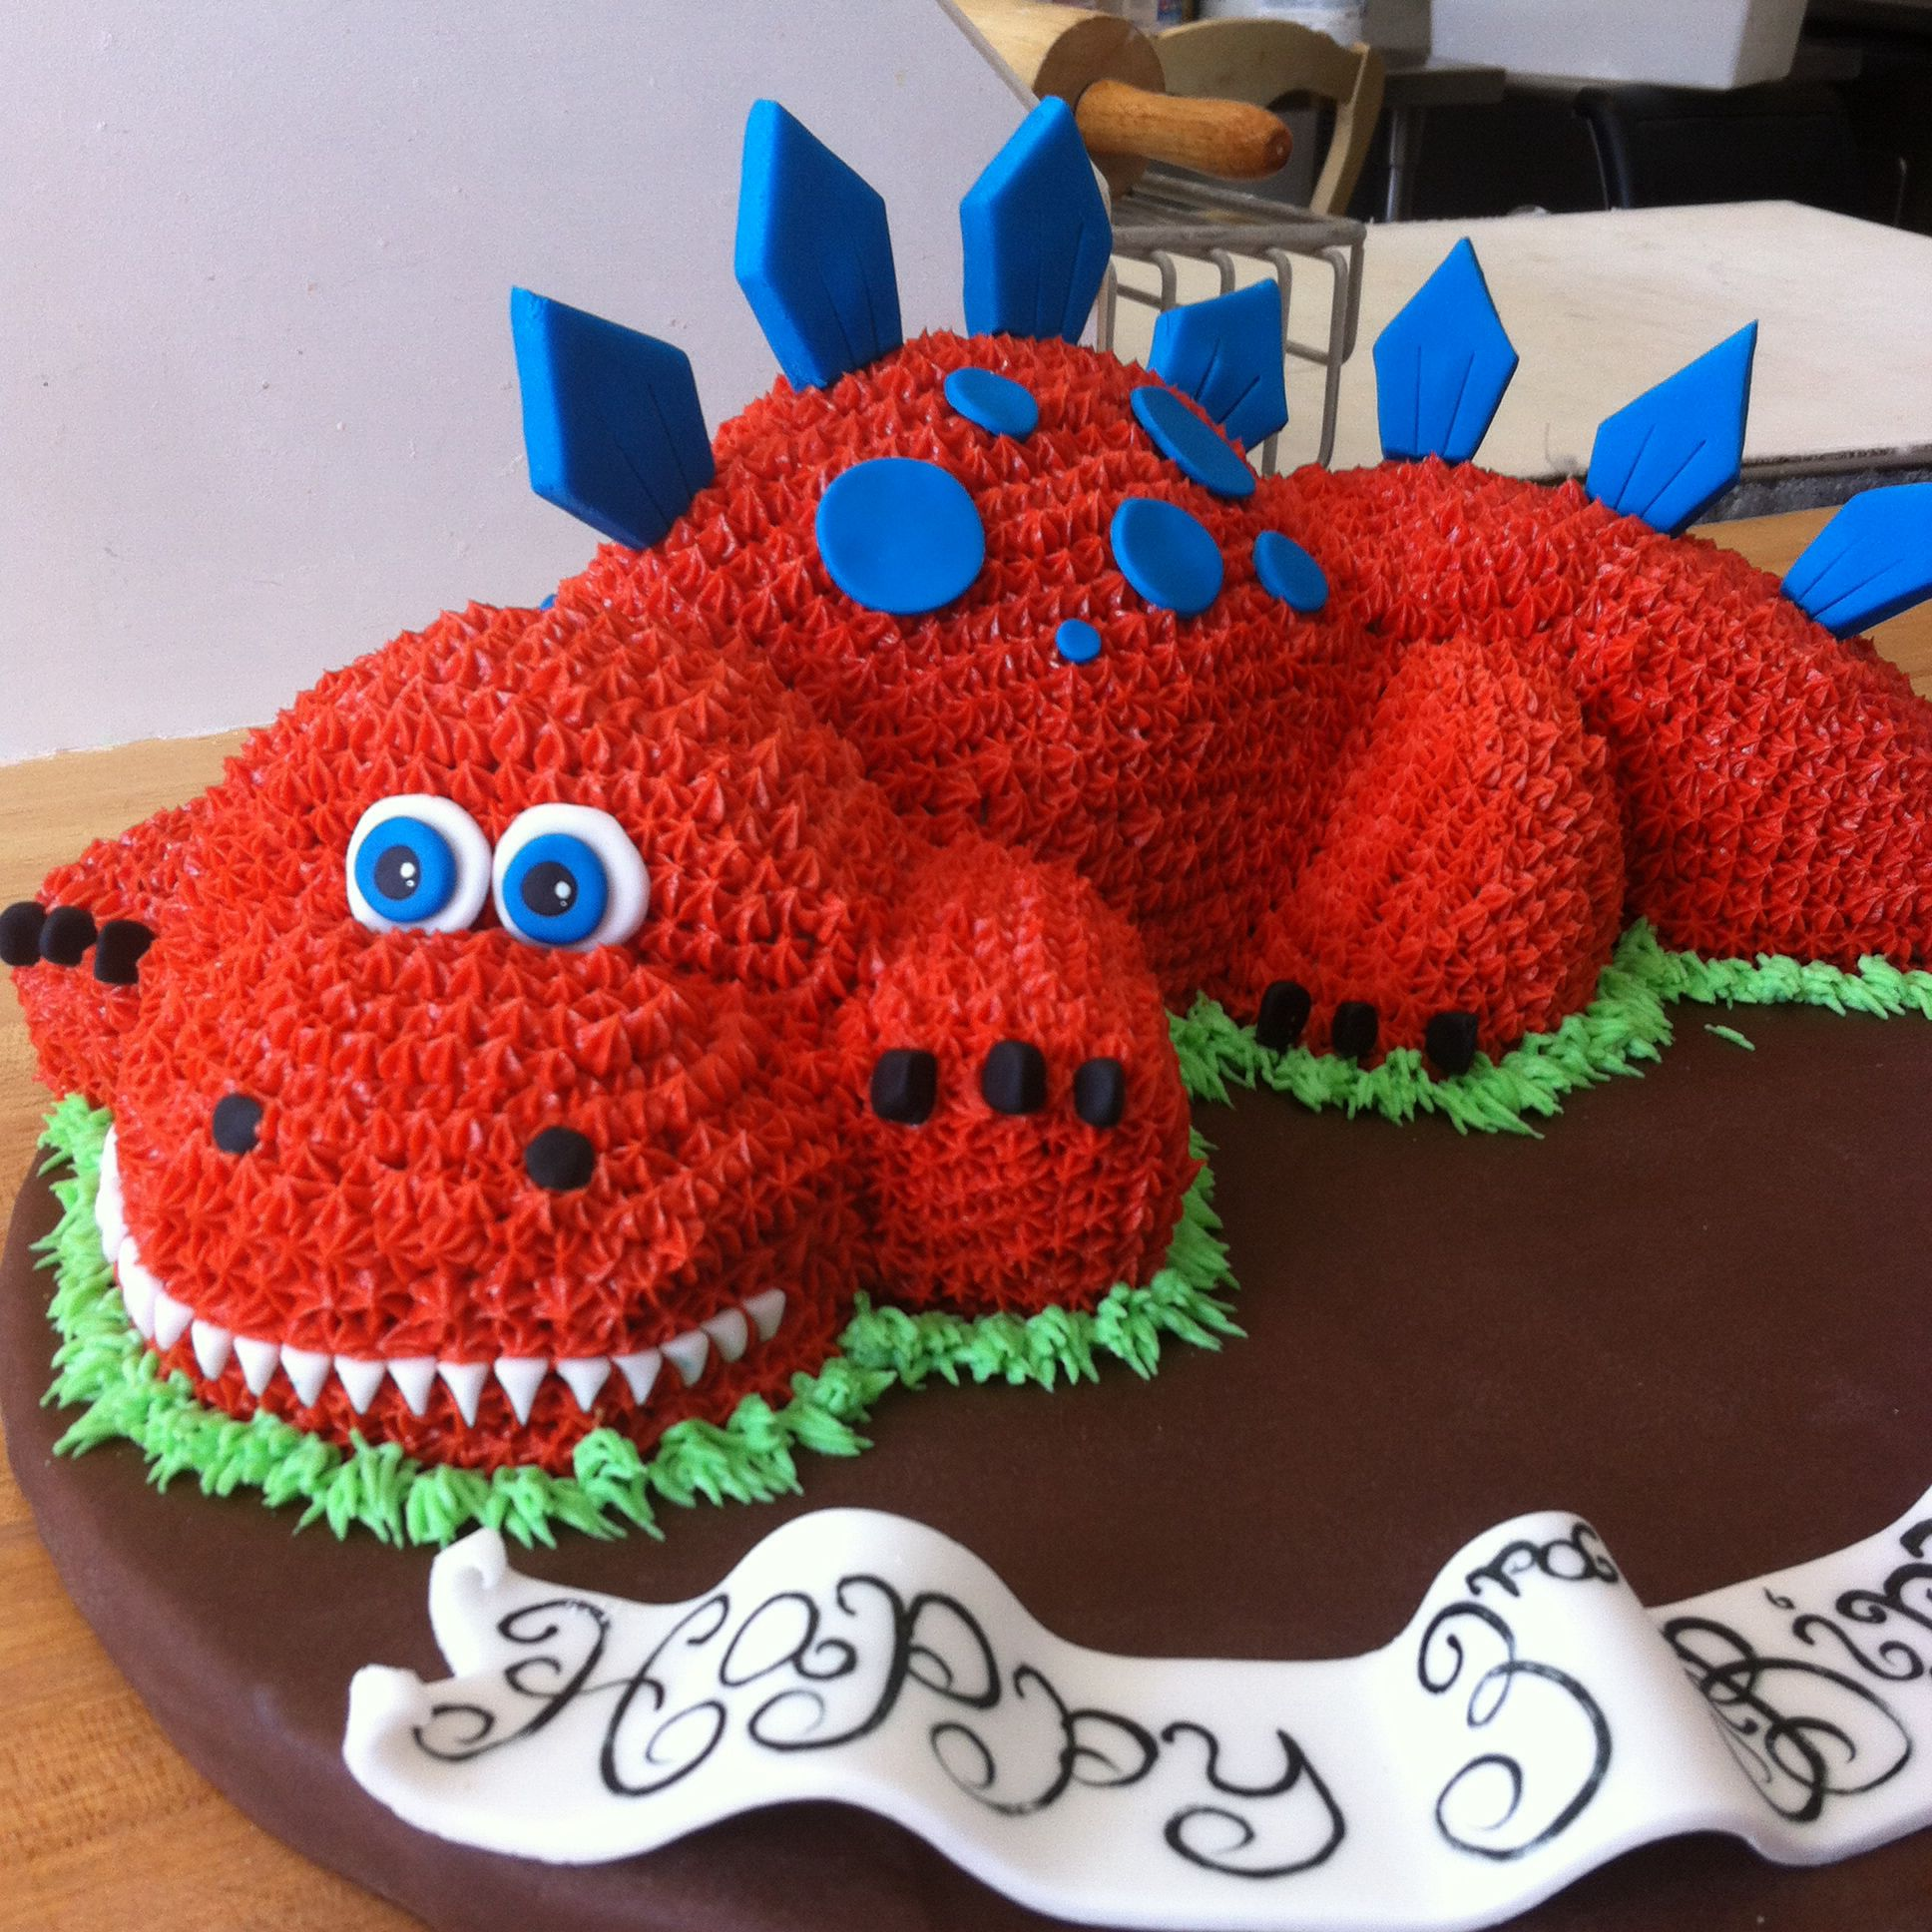 Dinosaur Birthday Cake By Theaccidentalbaker More Pics On Instagram Dinosaurbirthdaycake Birthdaycake